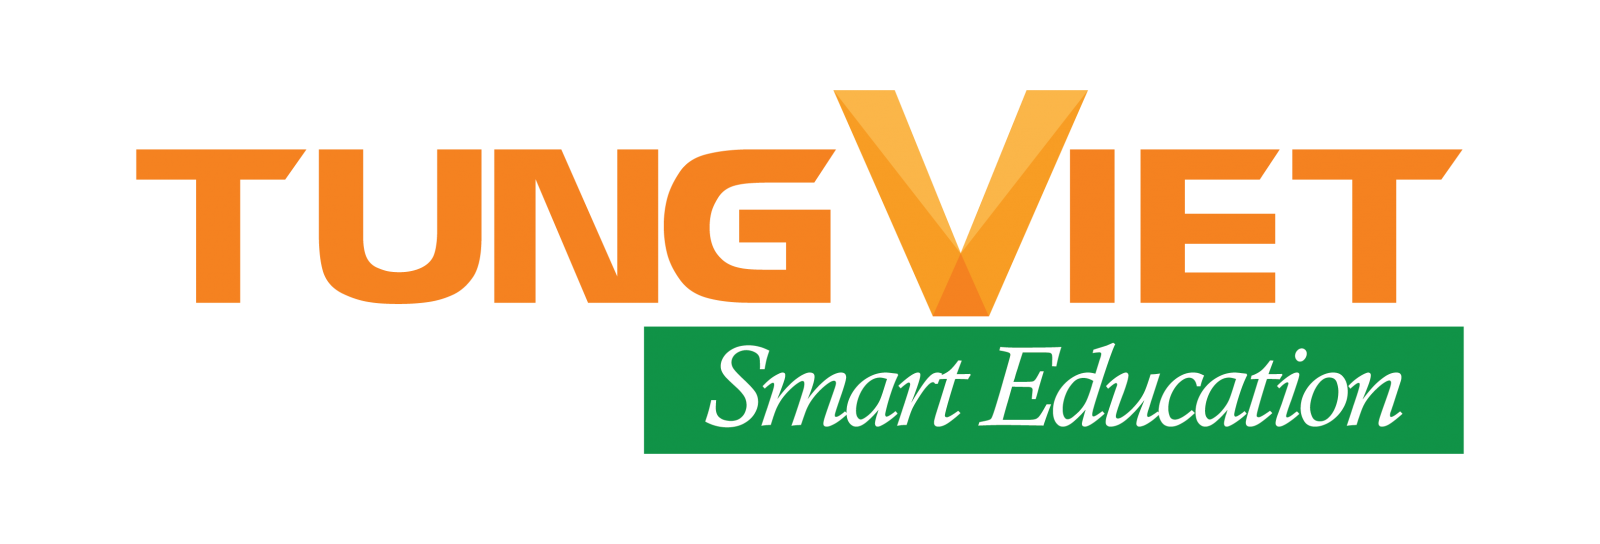 TUNGVIET SMART EDUCATION